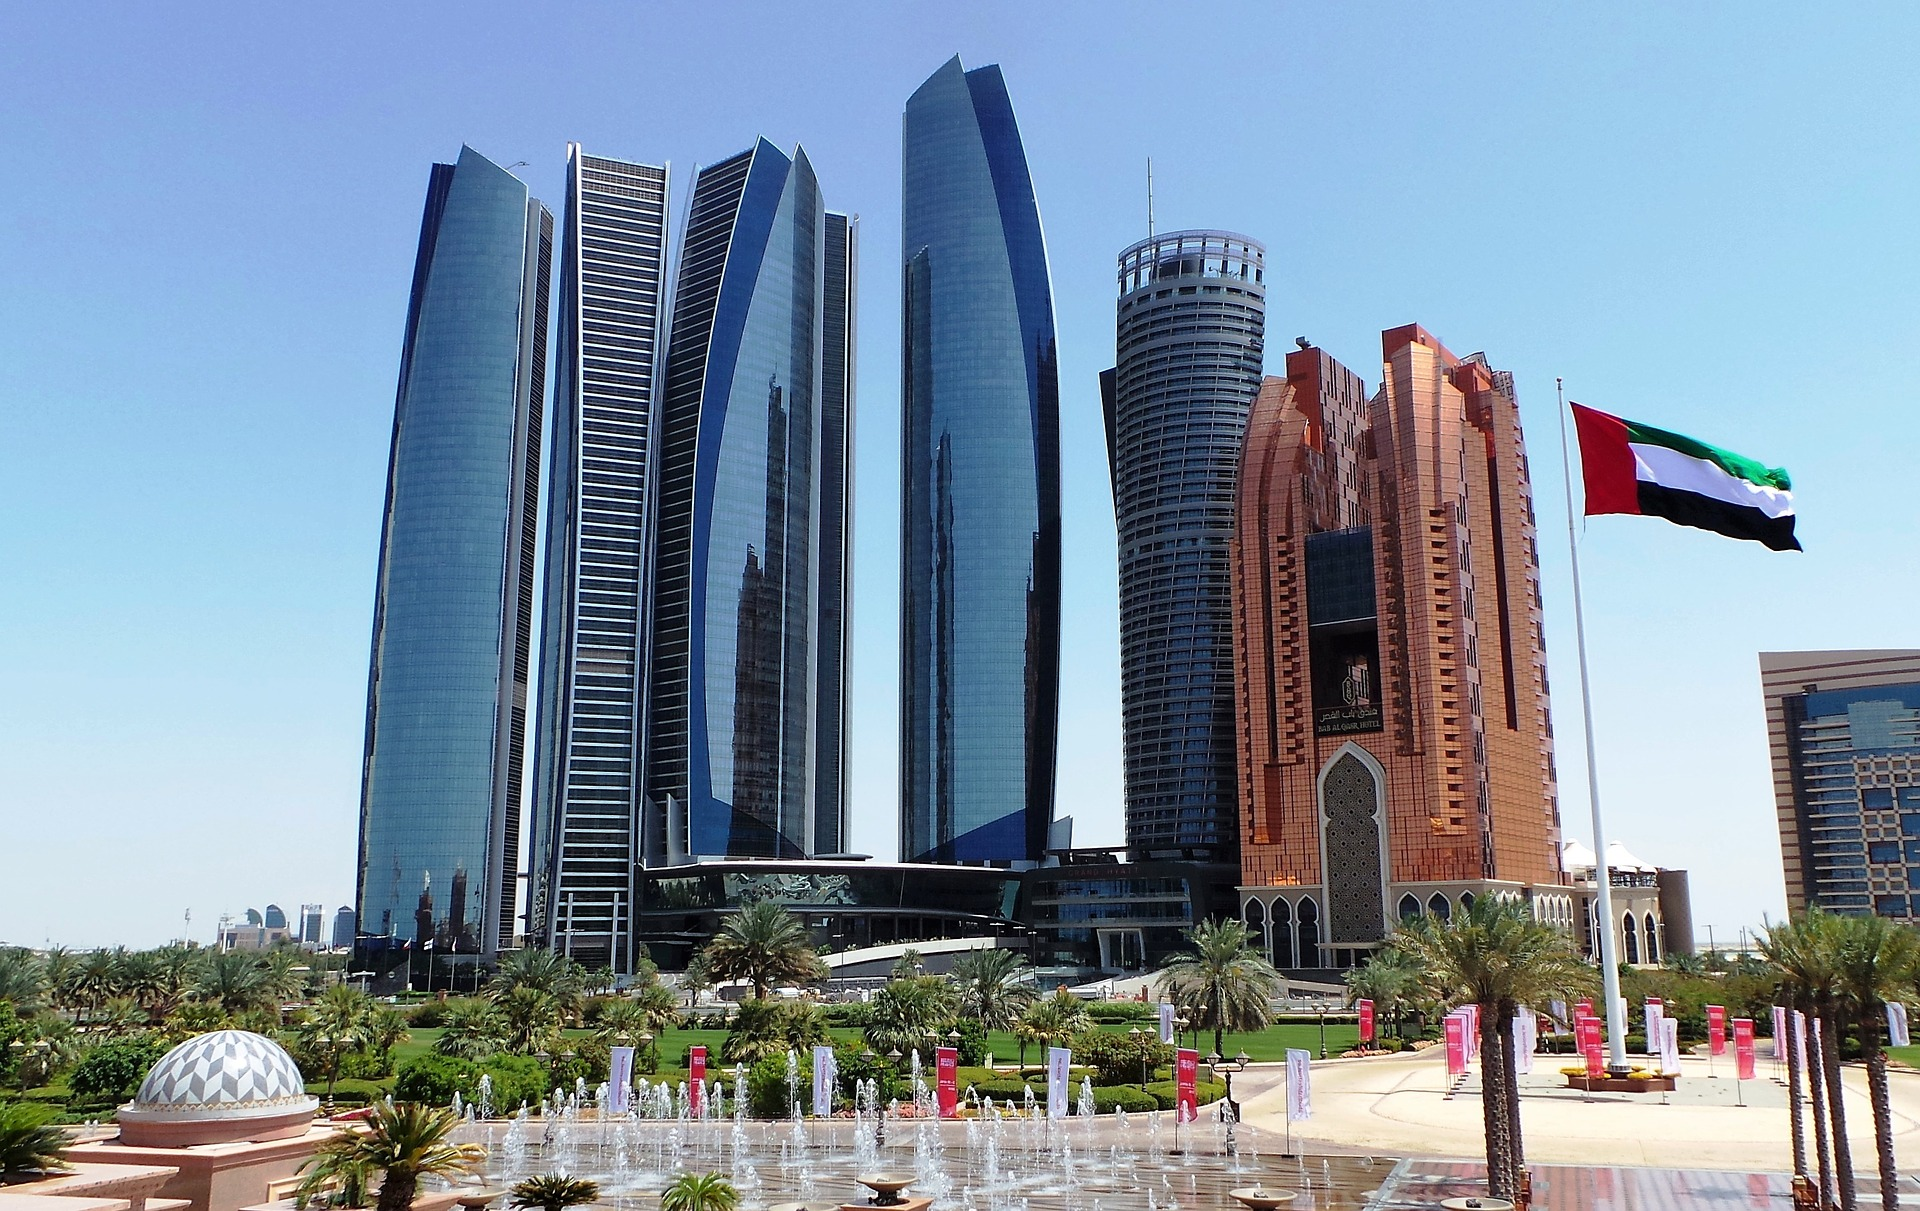 Modern skyscrapers in Abu Dhabi, UAE